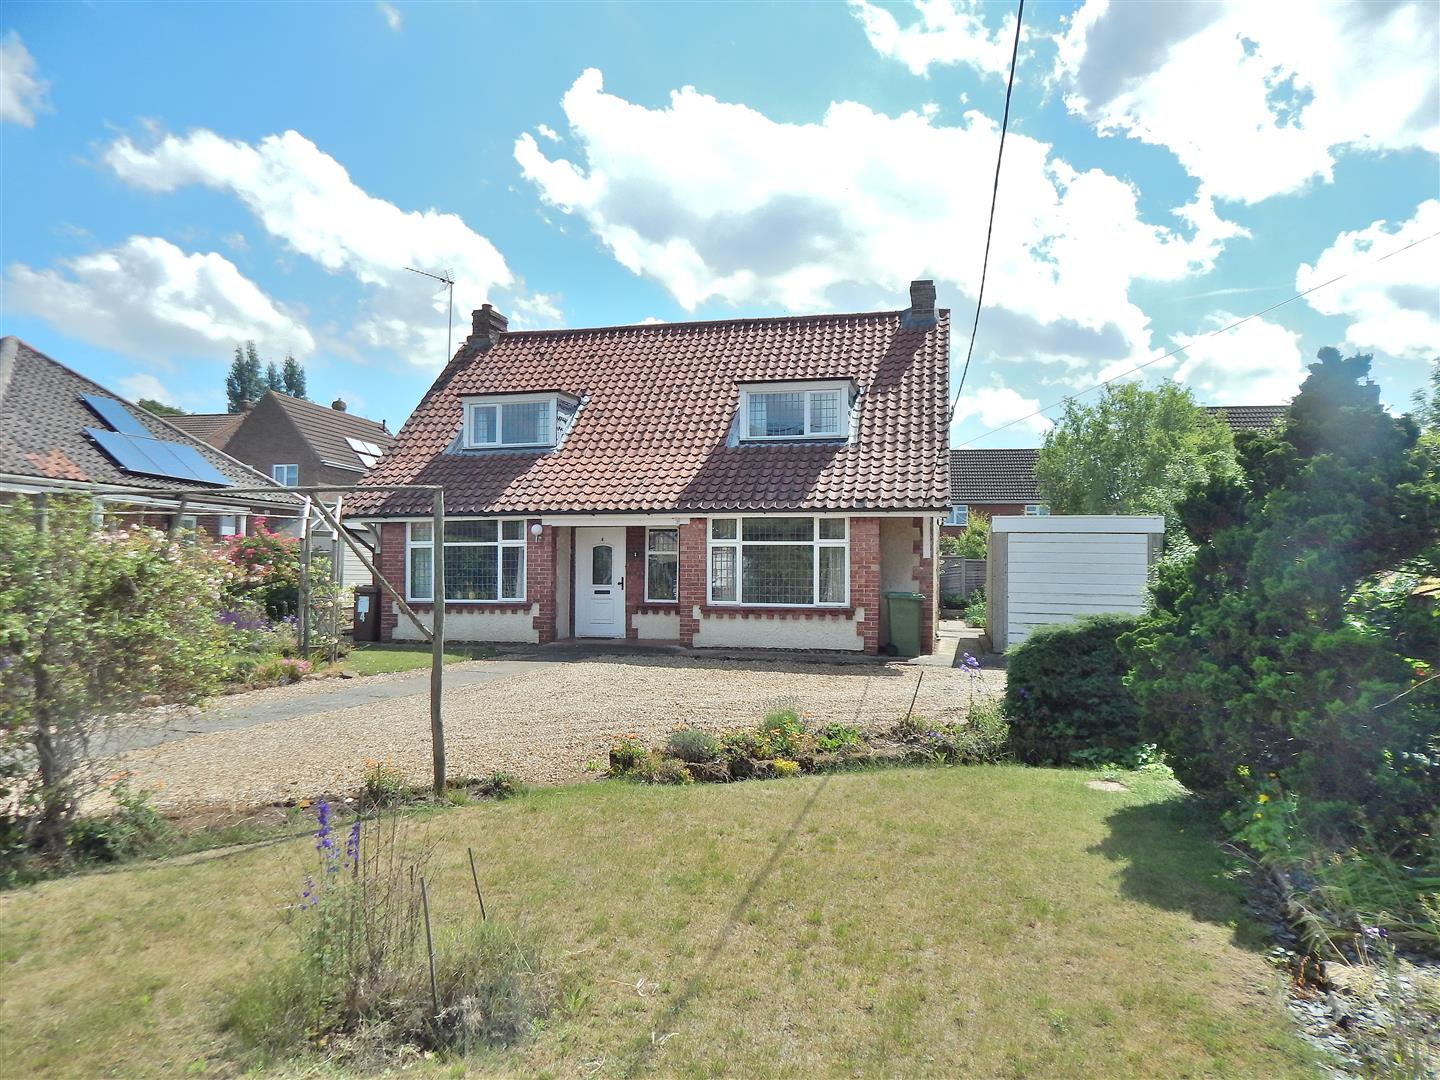 4 bed detached bungalow for sale in King's Lynn, PE31 6HT - Property Image 1